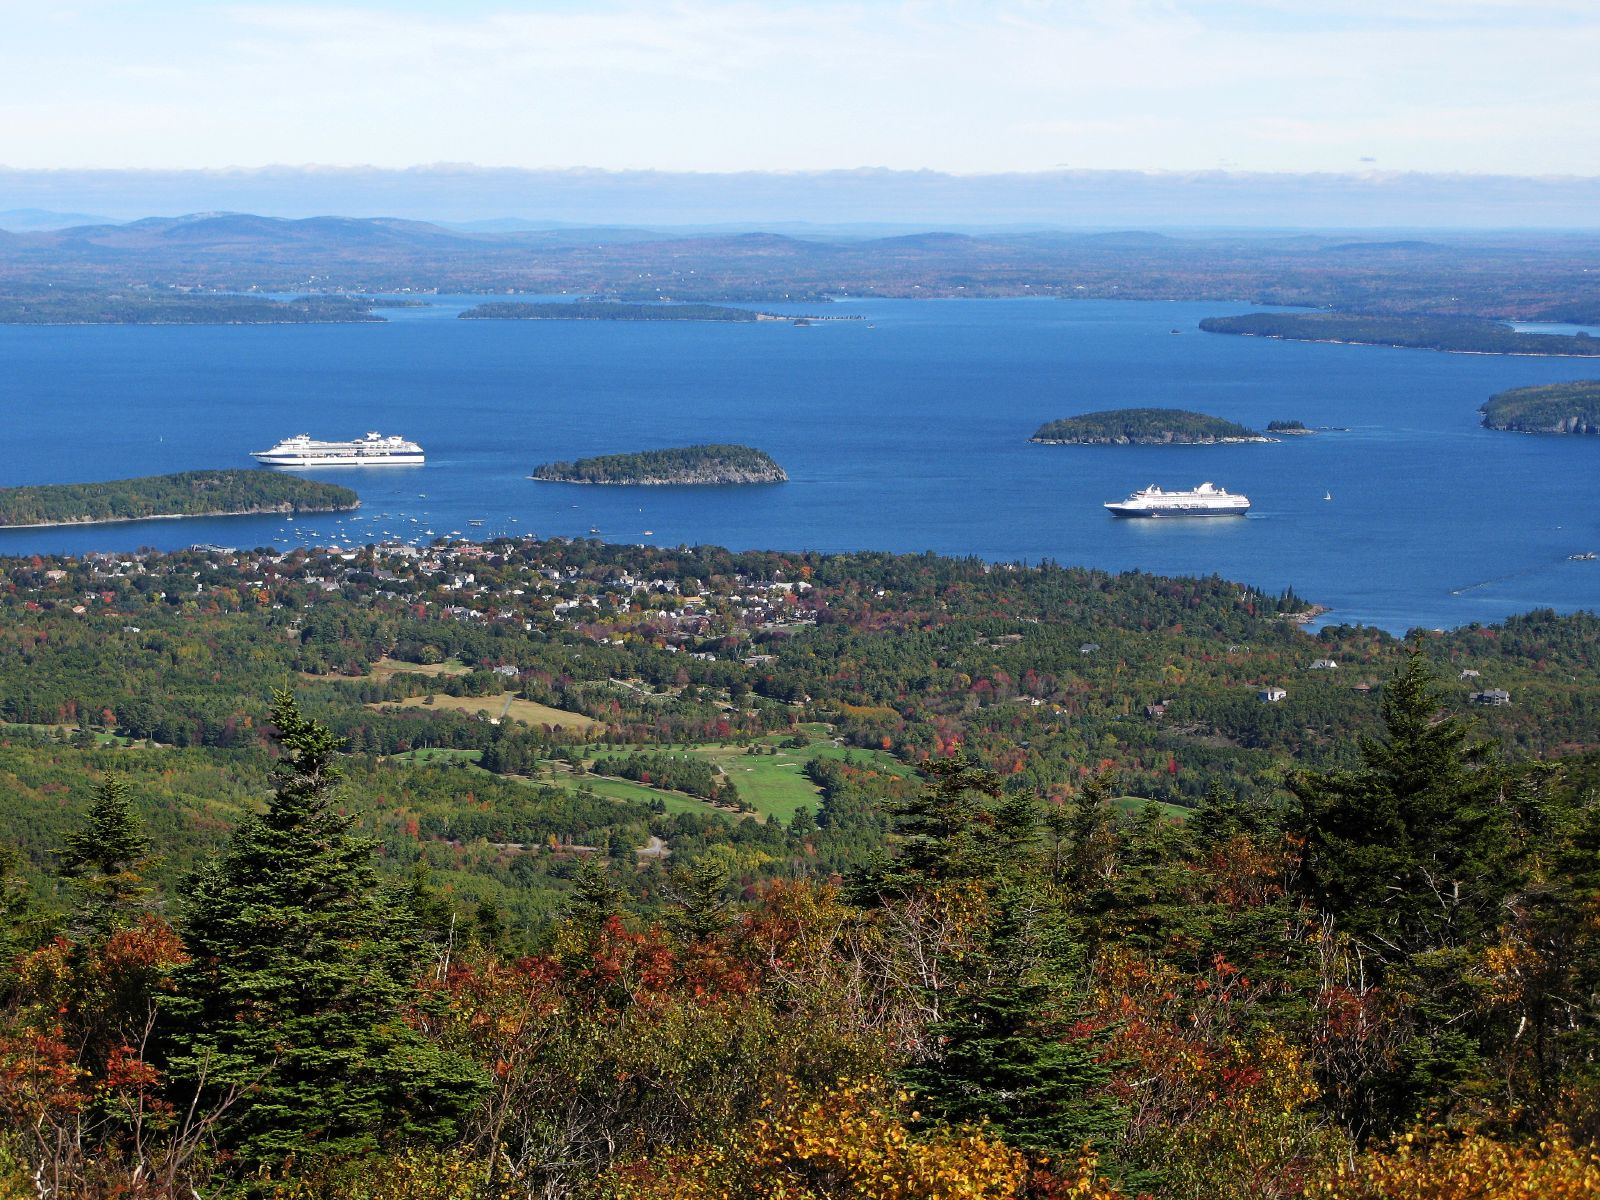 Bar Harbor, Frenchman Bay, and the Porcupine Islands